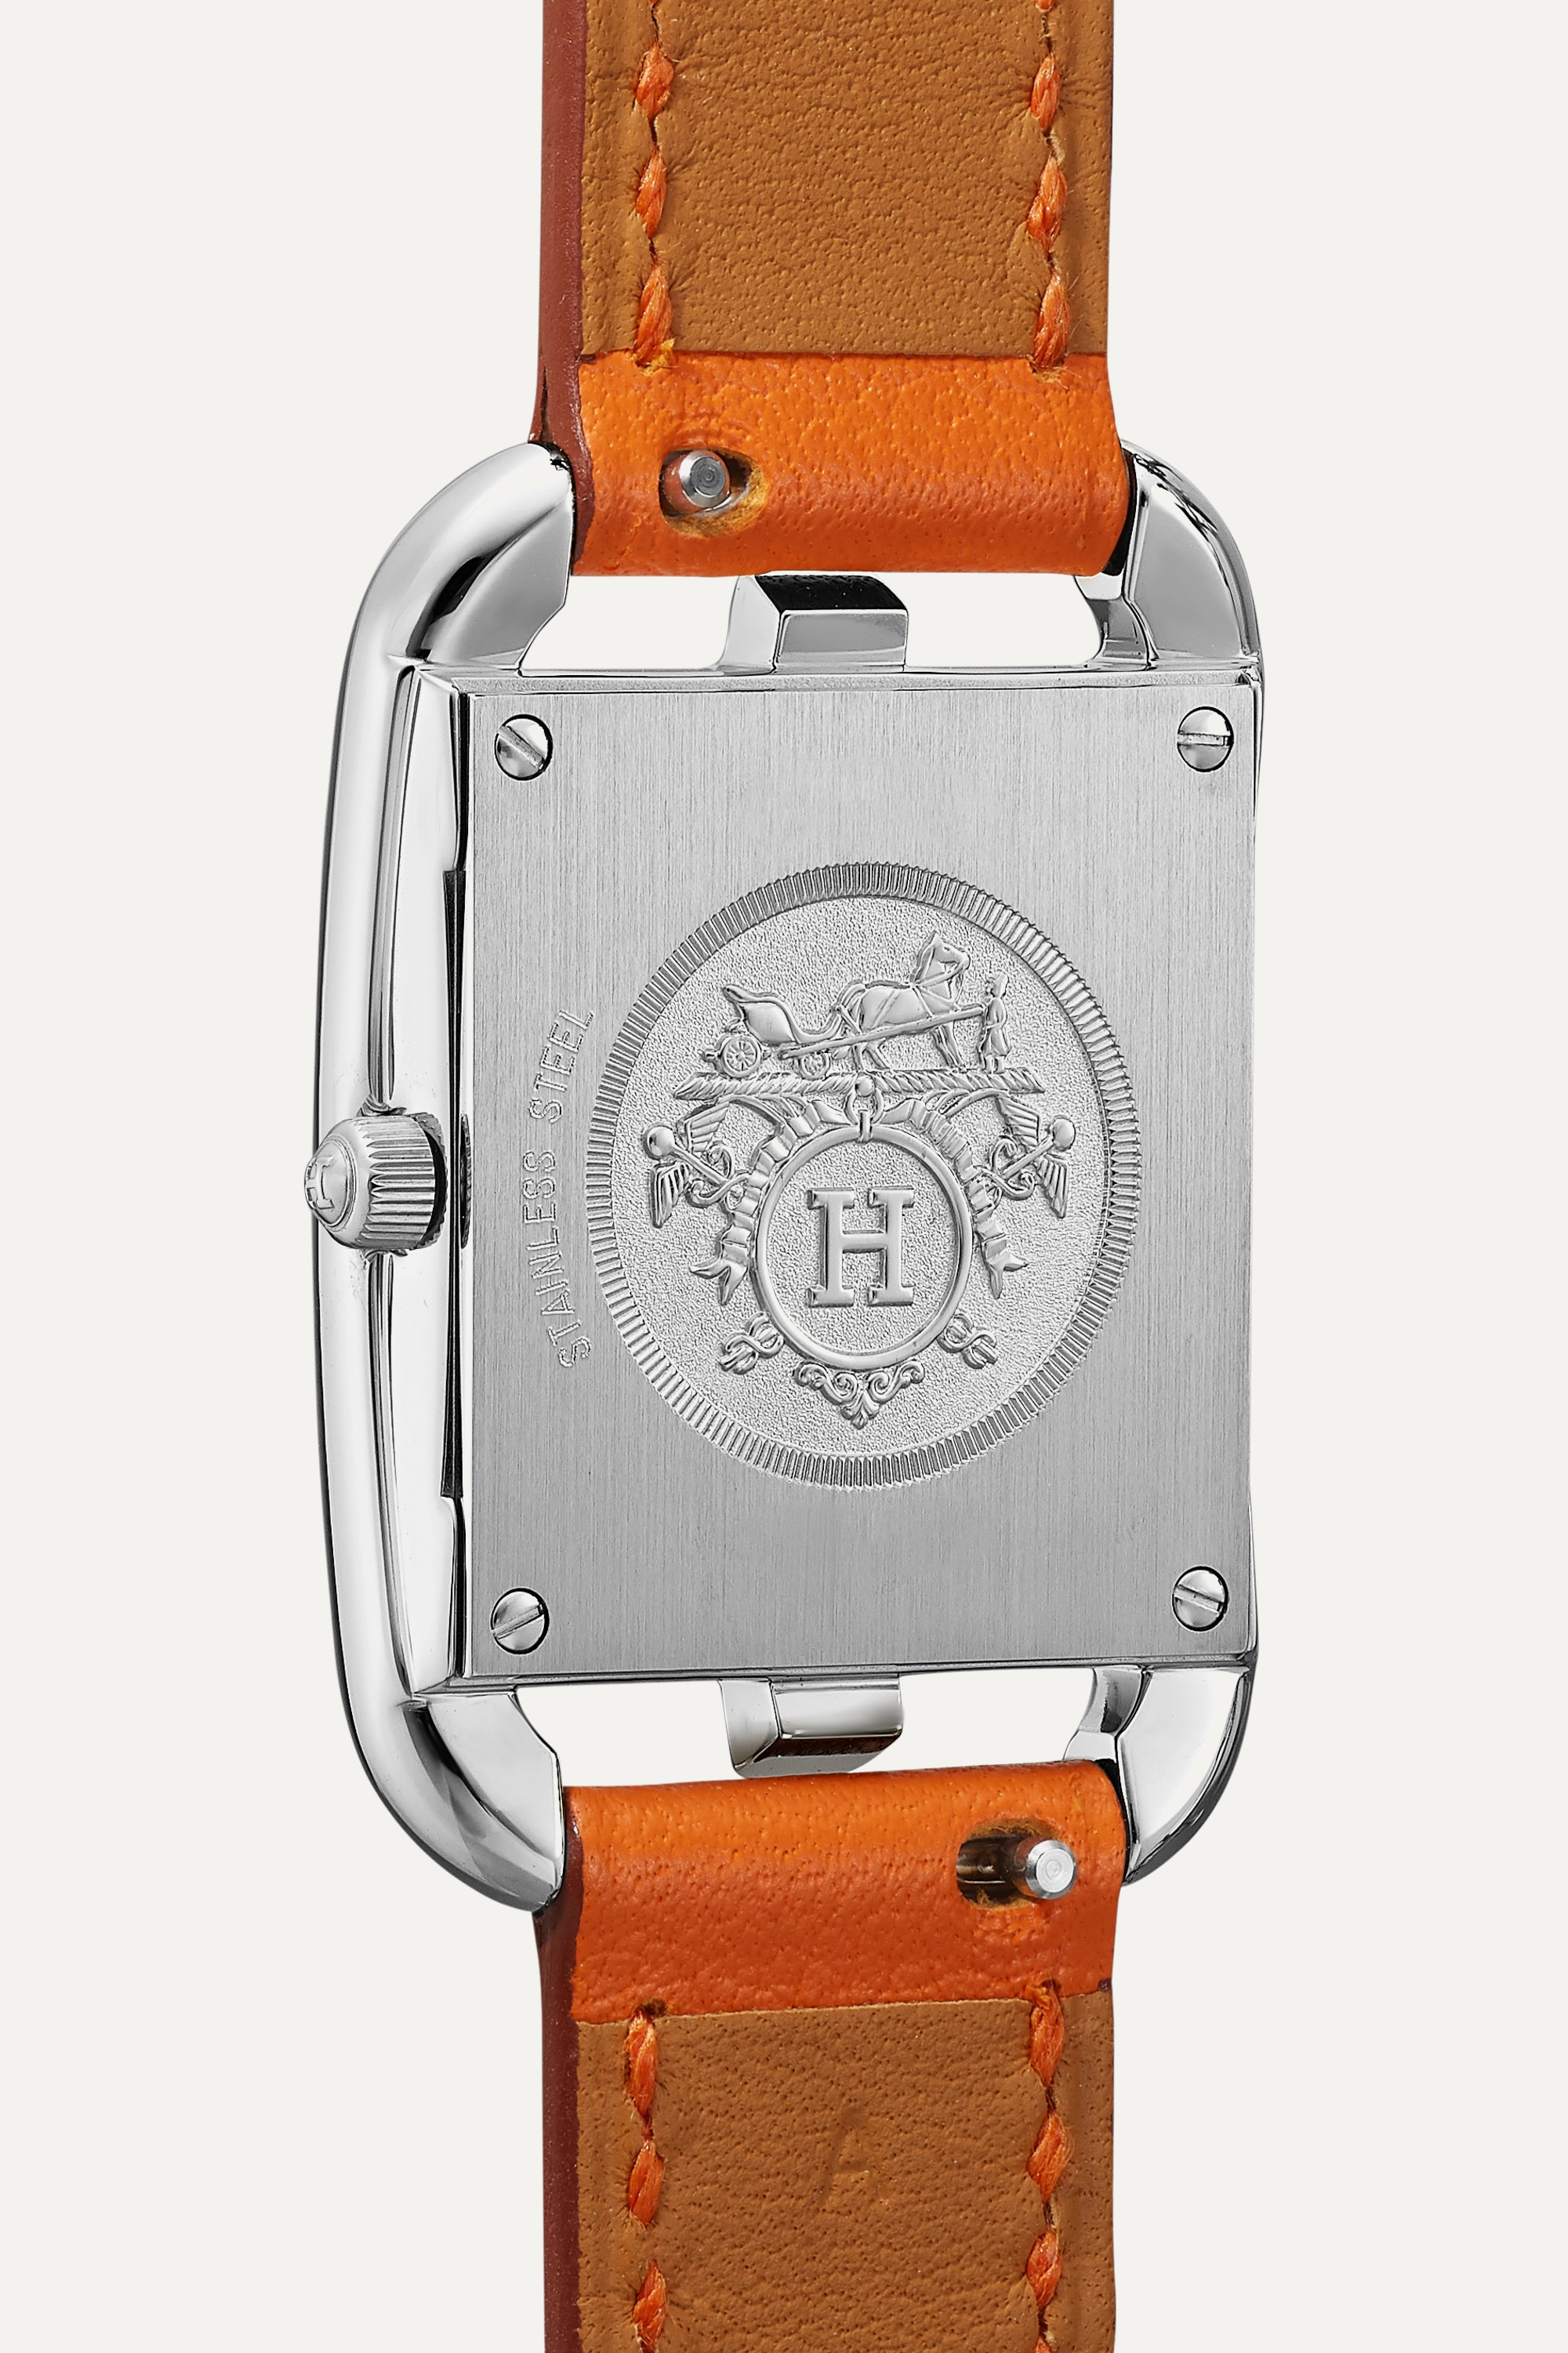 HERMÈS TIMEPIECES Cape Cod 23mm small stainless steel and leather watch